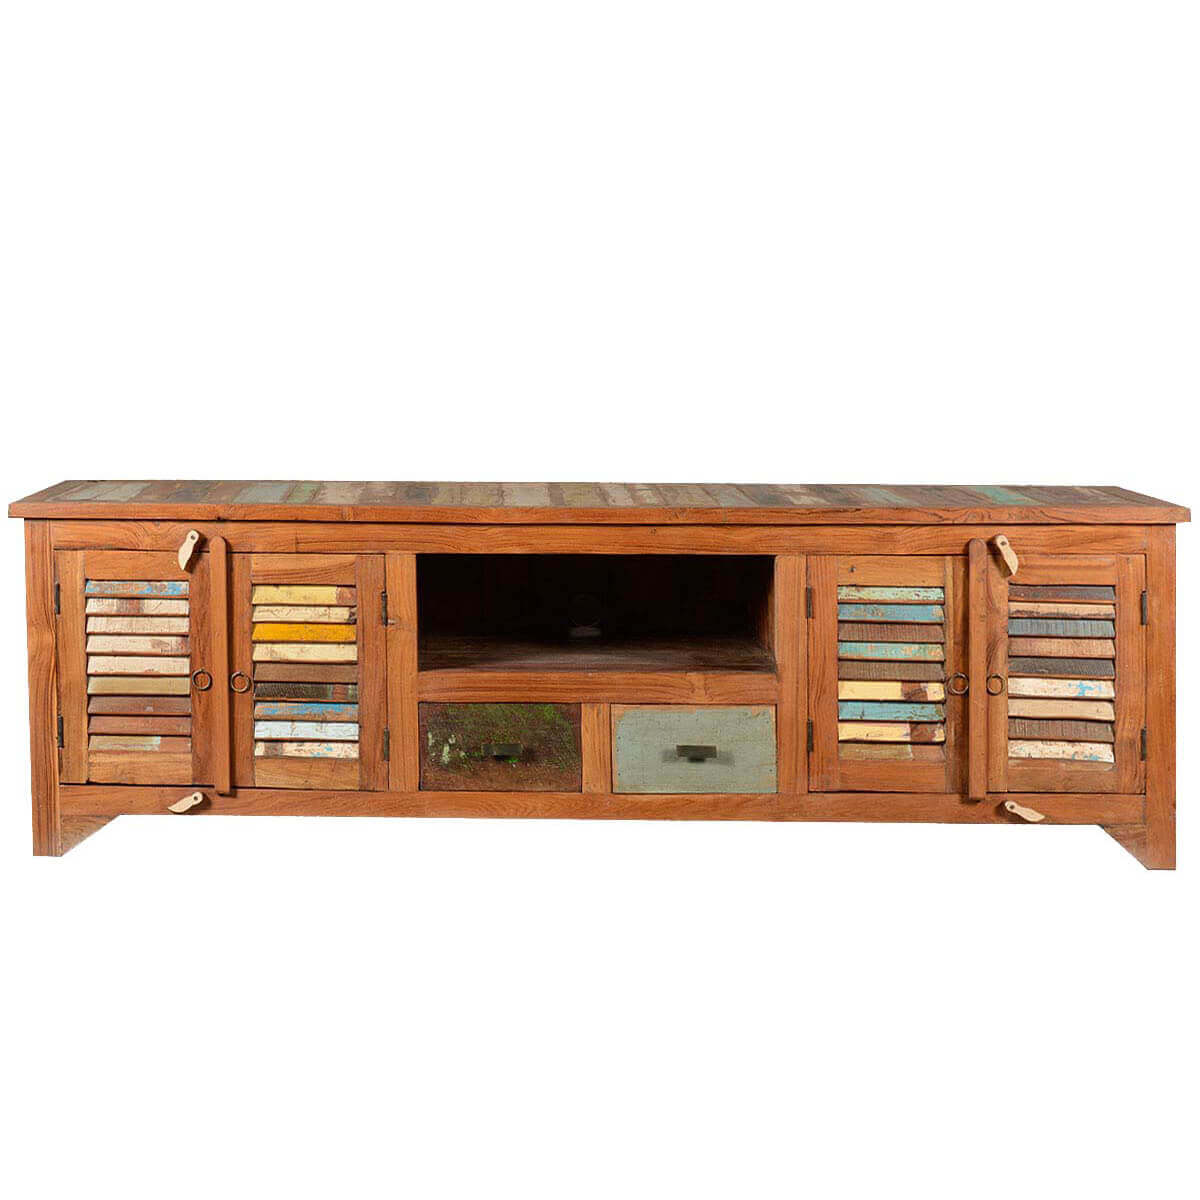 Rustic reclaimed wood rainbow shutter doors tv stand media Rustic tv stands